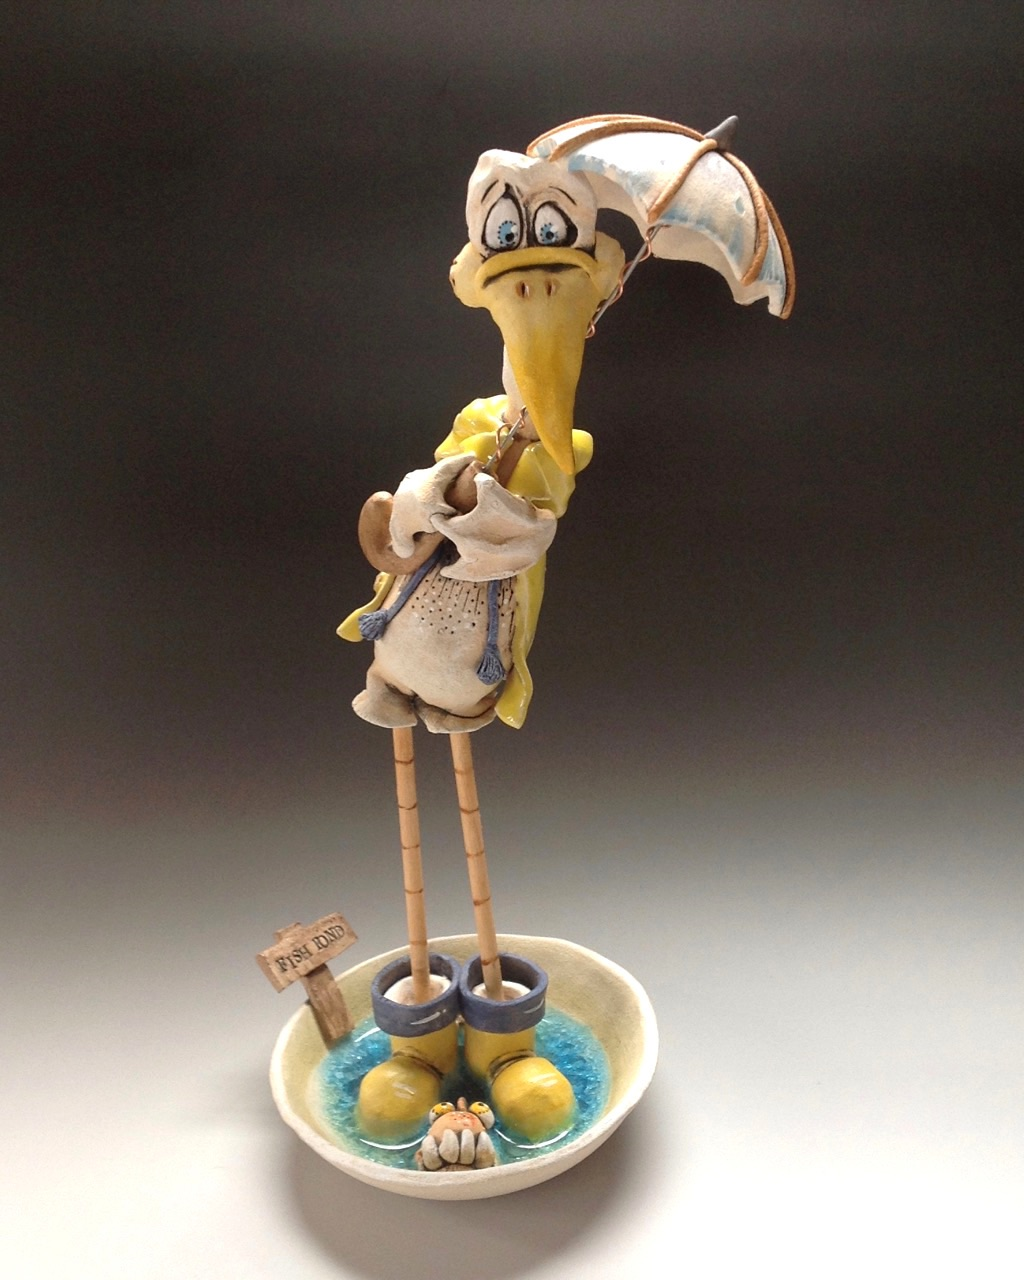 seagull whimsical sculpture ceramic stoneware